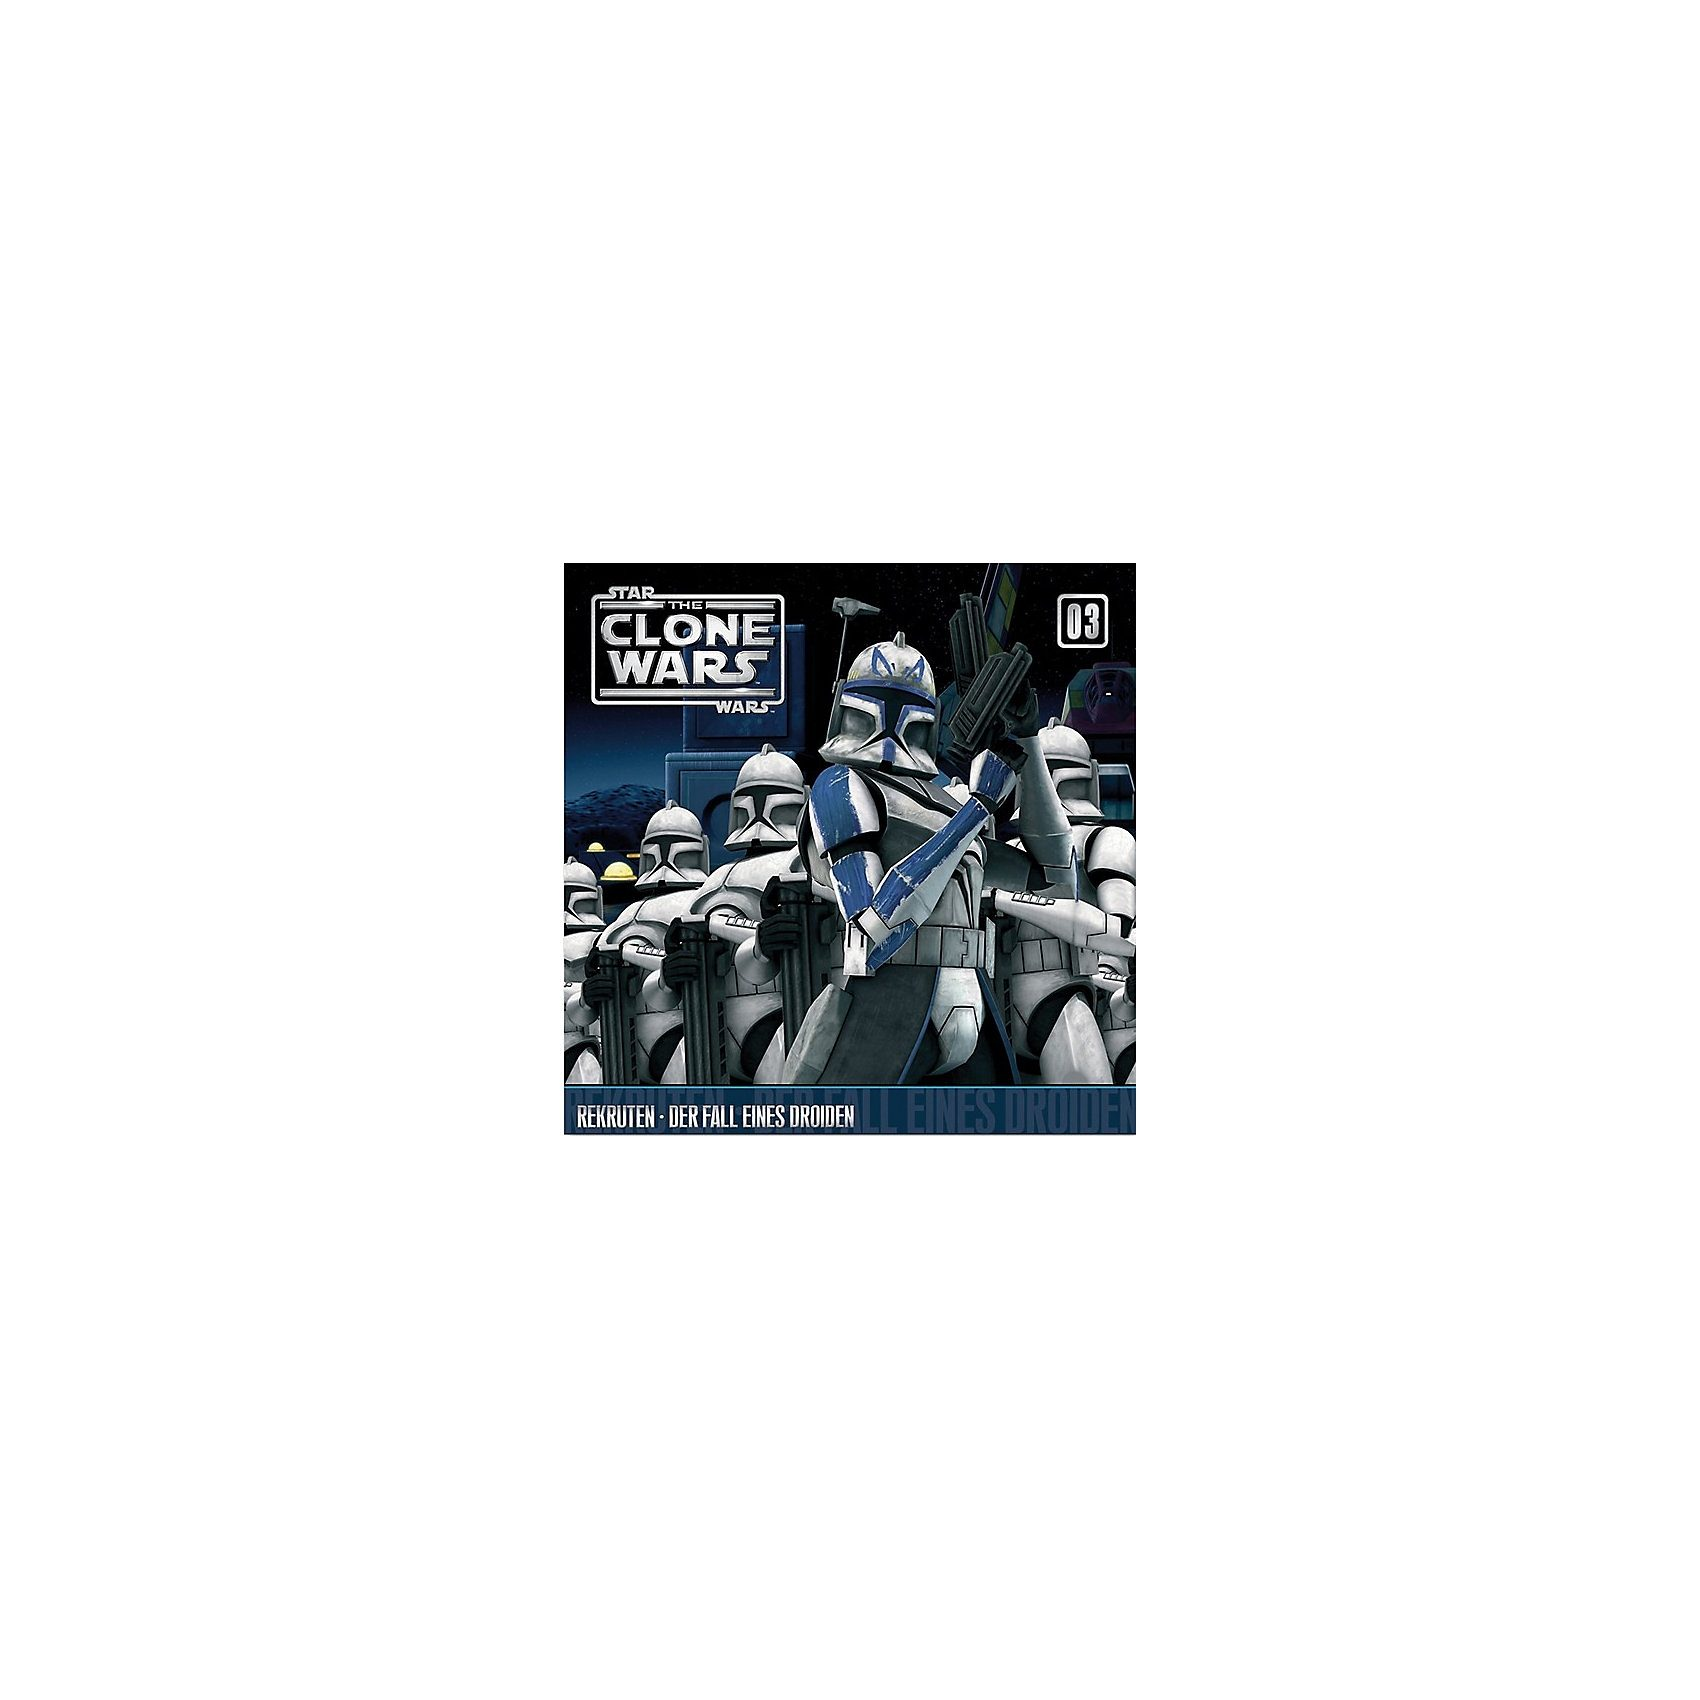 Universal CD Star Wars - The Clone Wars 03 - Rekruten/Der Fall eines D